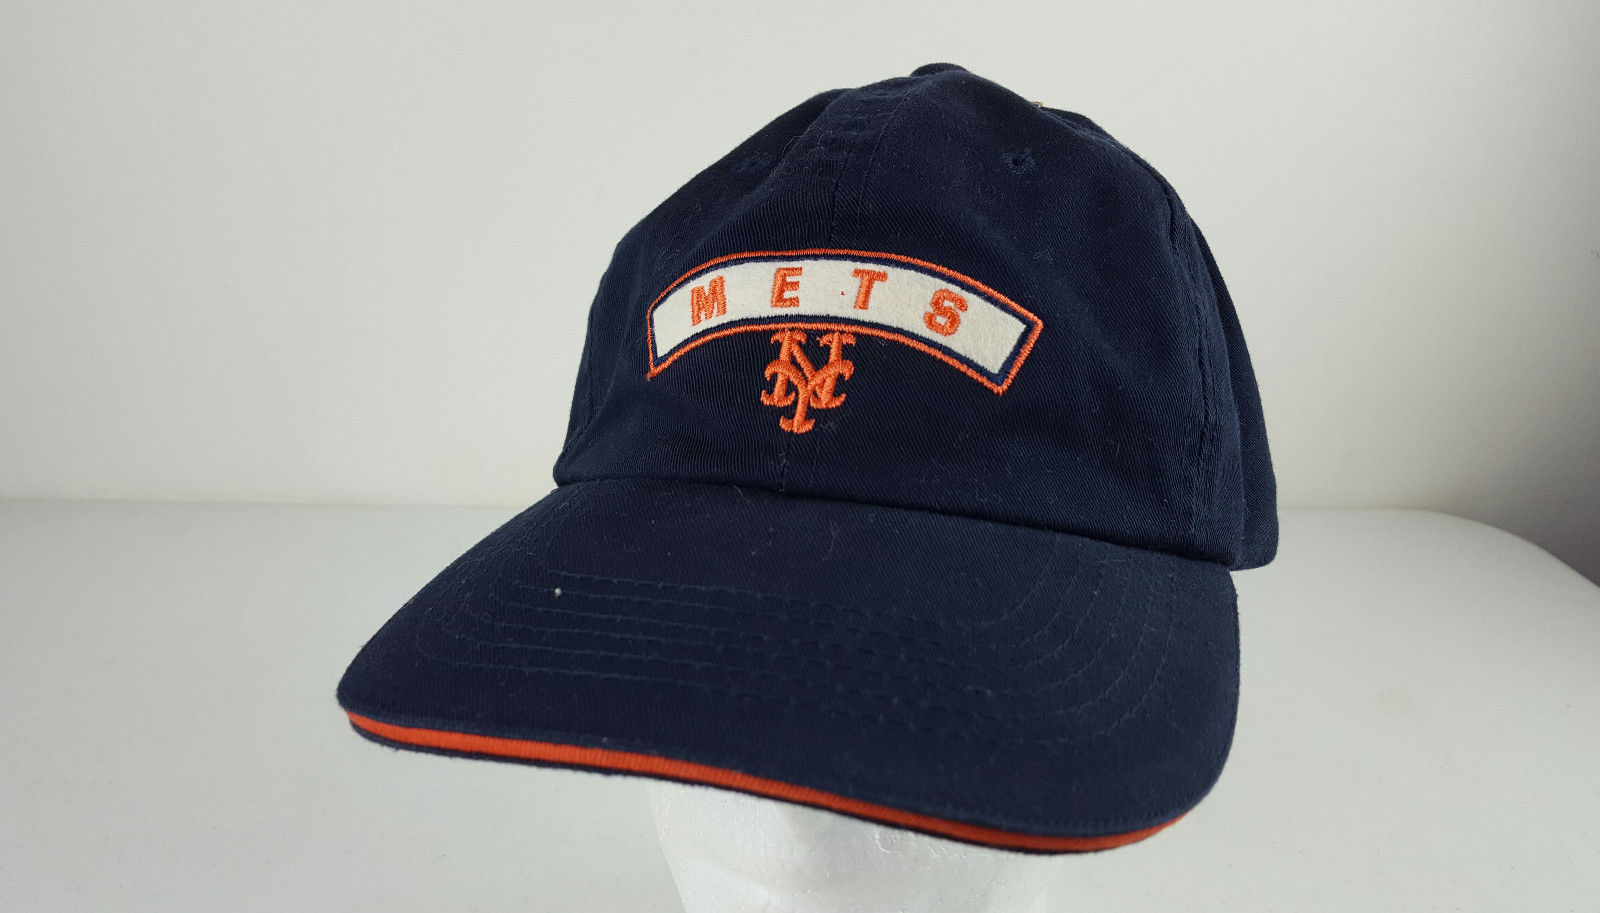 ae268a6ded4 S l1600. S l1600. New York Mets Embroidered Logo on Blue Adjustable  Baseball Hat American Needle